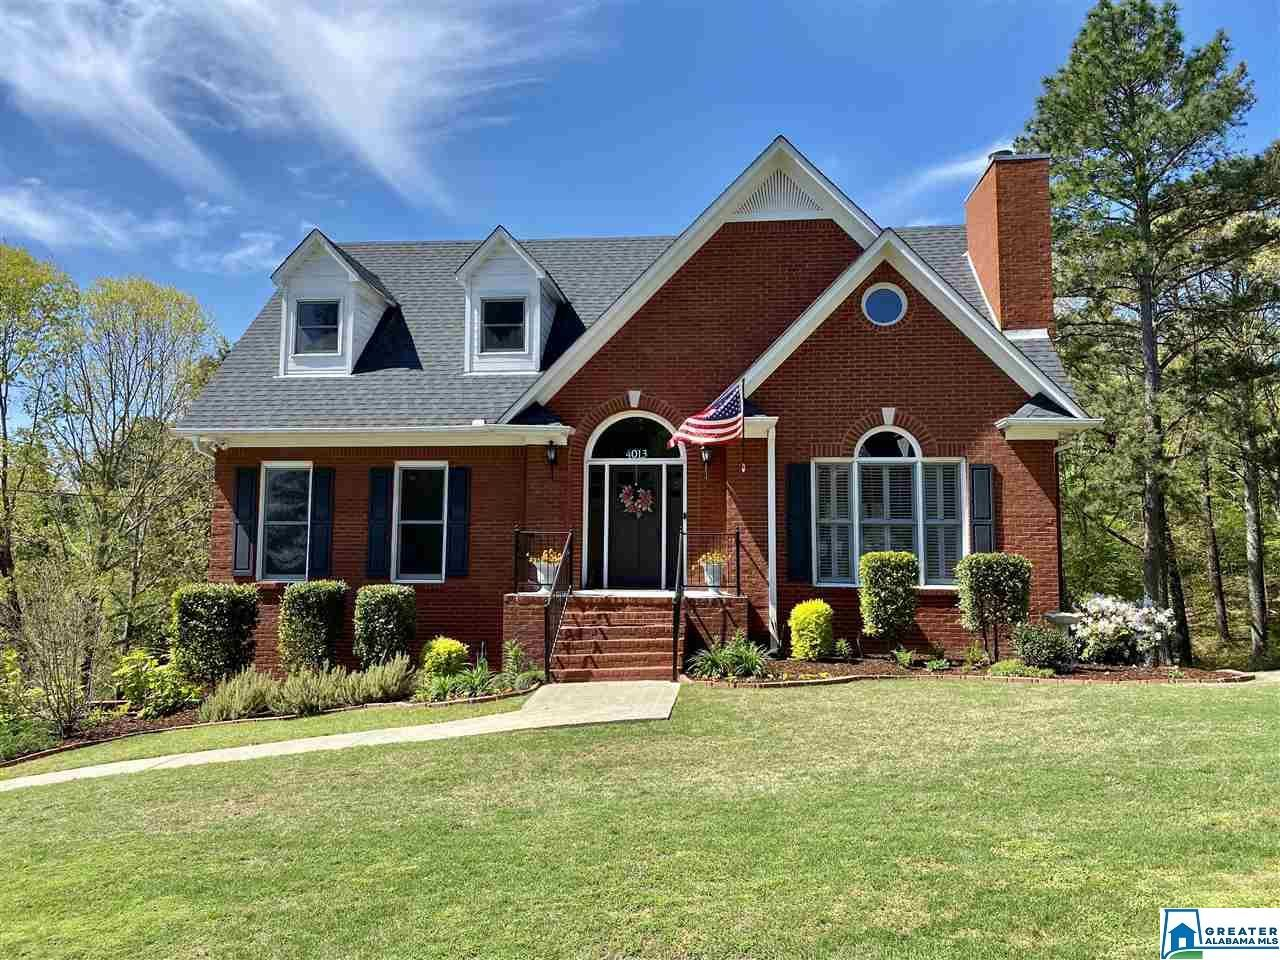 4013 LAUREL RIDGE TRL, Trussville, AL 35173 - #: 879528